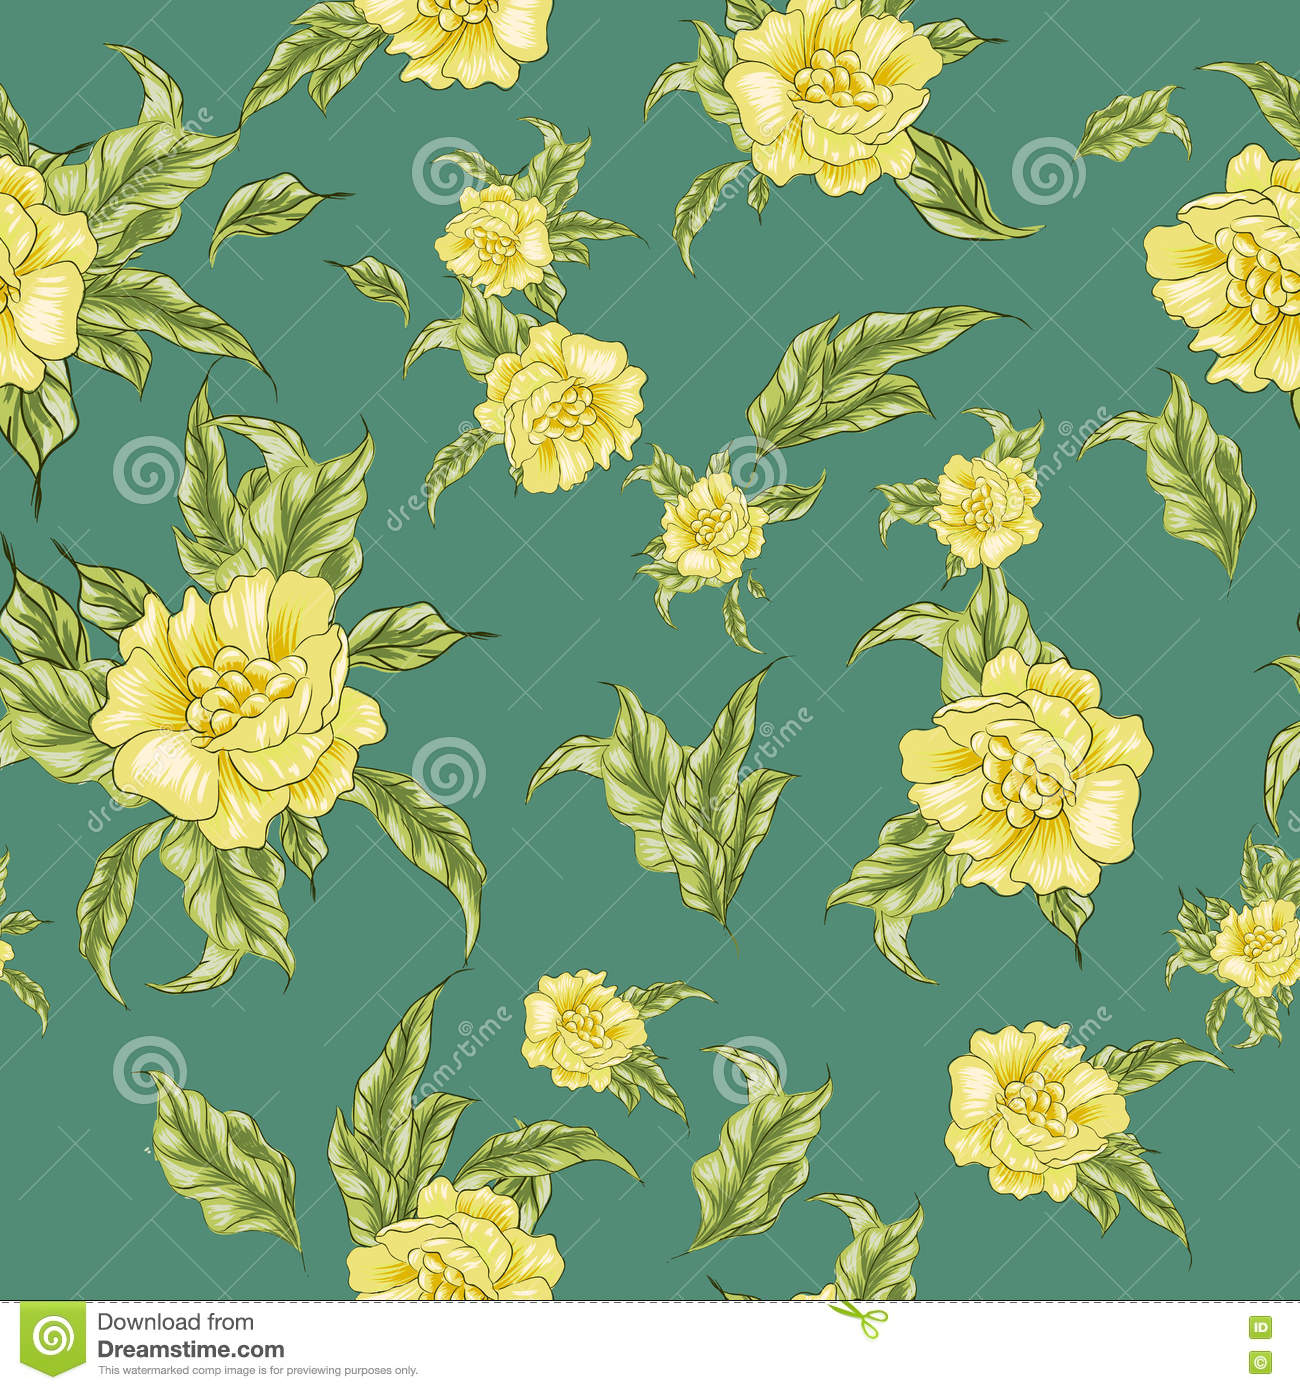 Wallpaper Of Yellow Rose: Vintage Wallpaper Seamless Pattern With Yellow Roses On